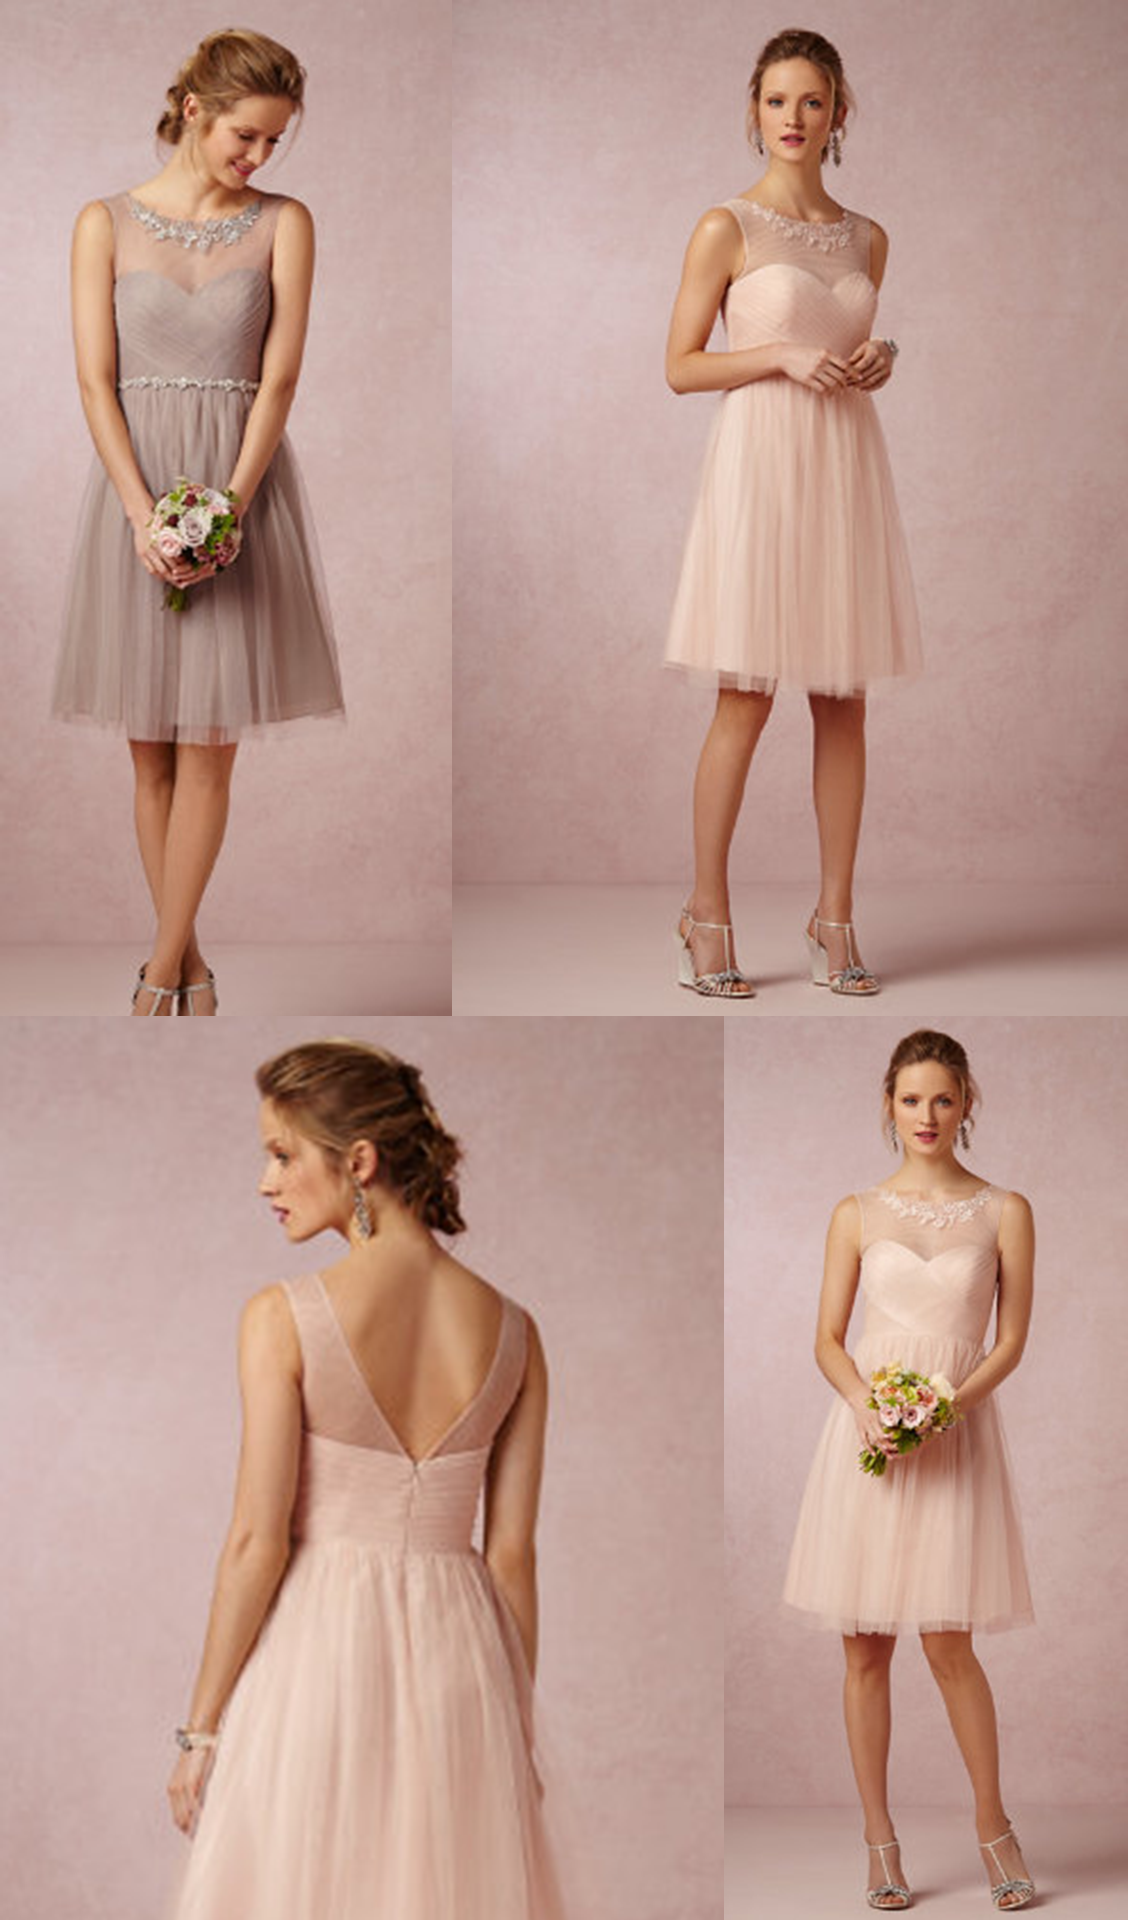 Beautiful bridesmaid dress by bhldn rstylenjcwnbn